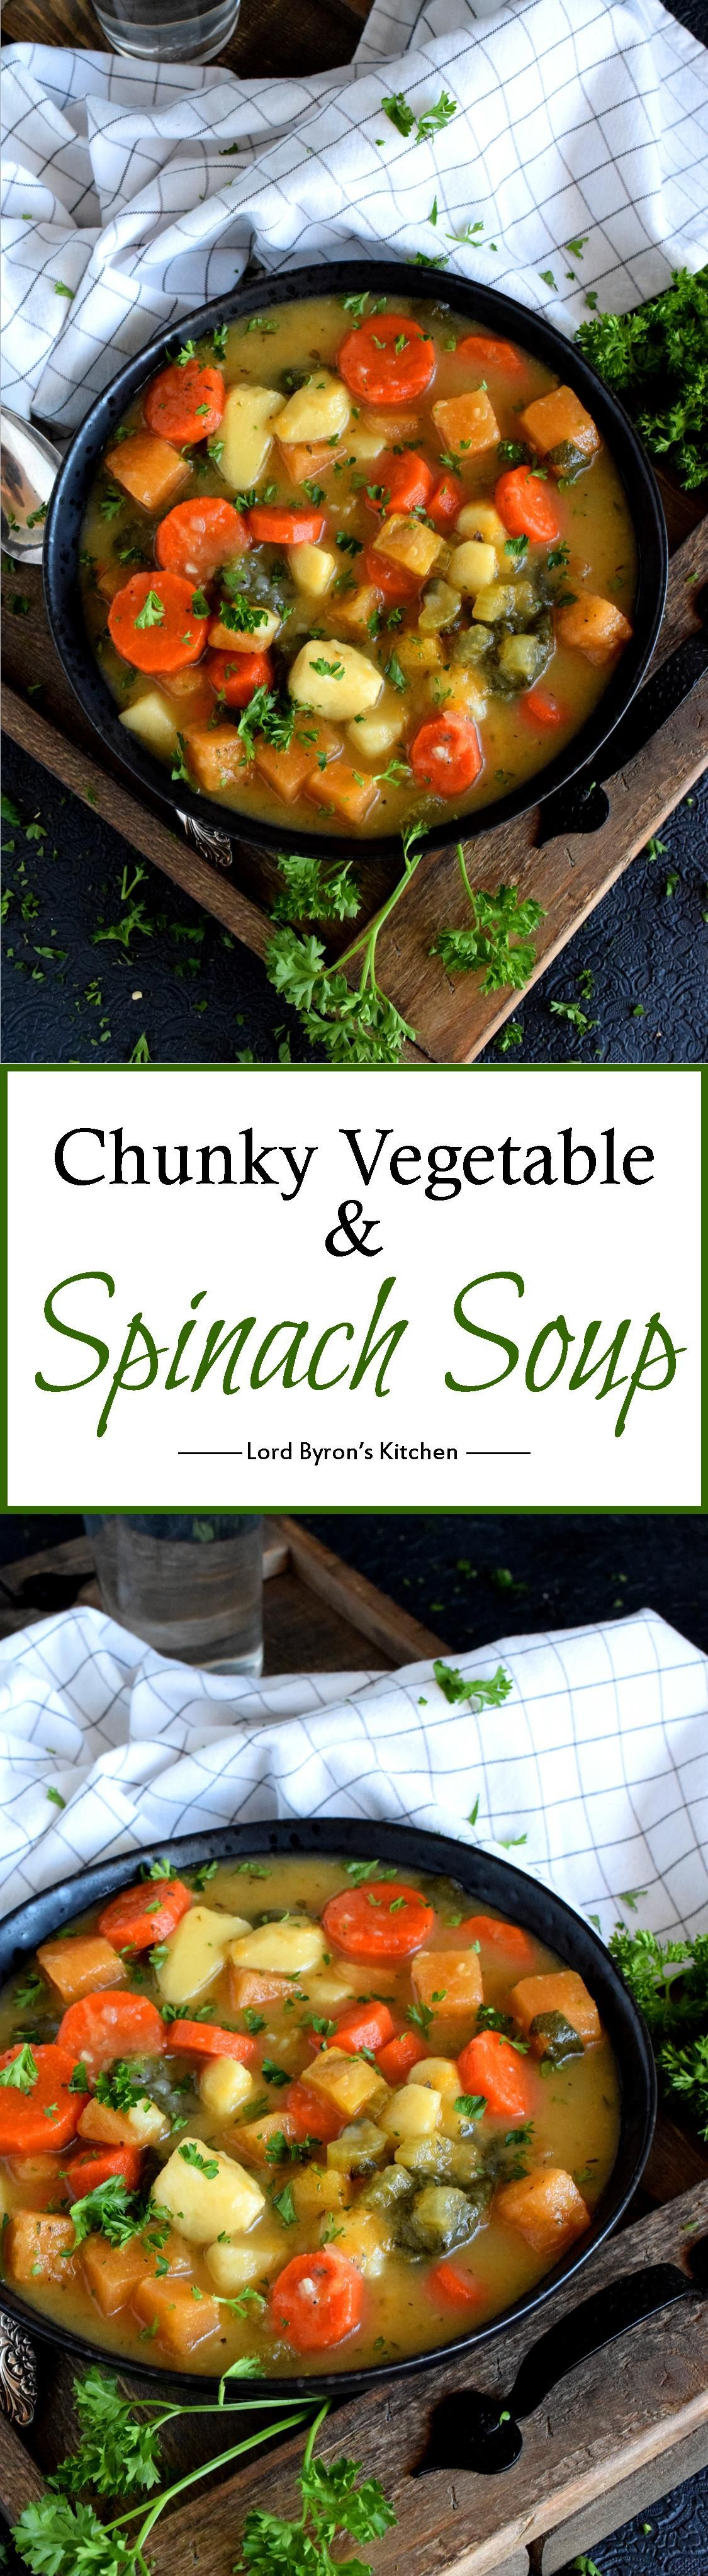 Chunky Vegetable and Spinach Soup - Lord Byron's Kitchen #spinachsoup